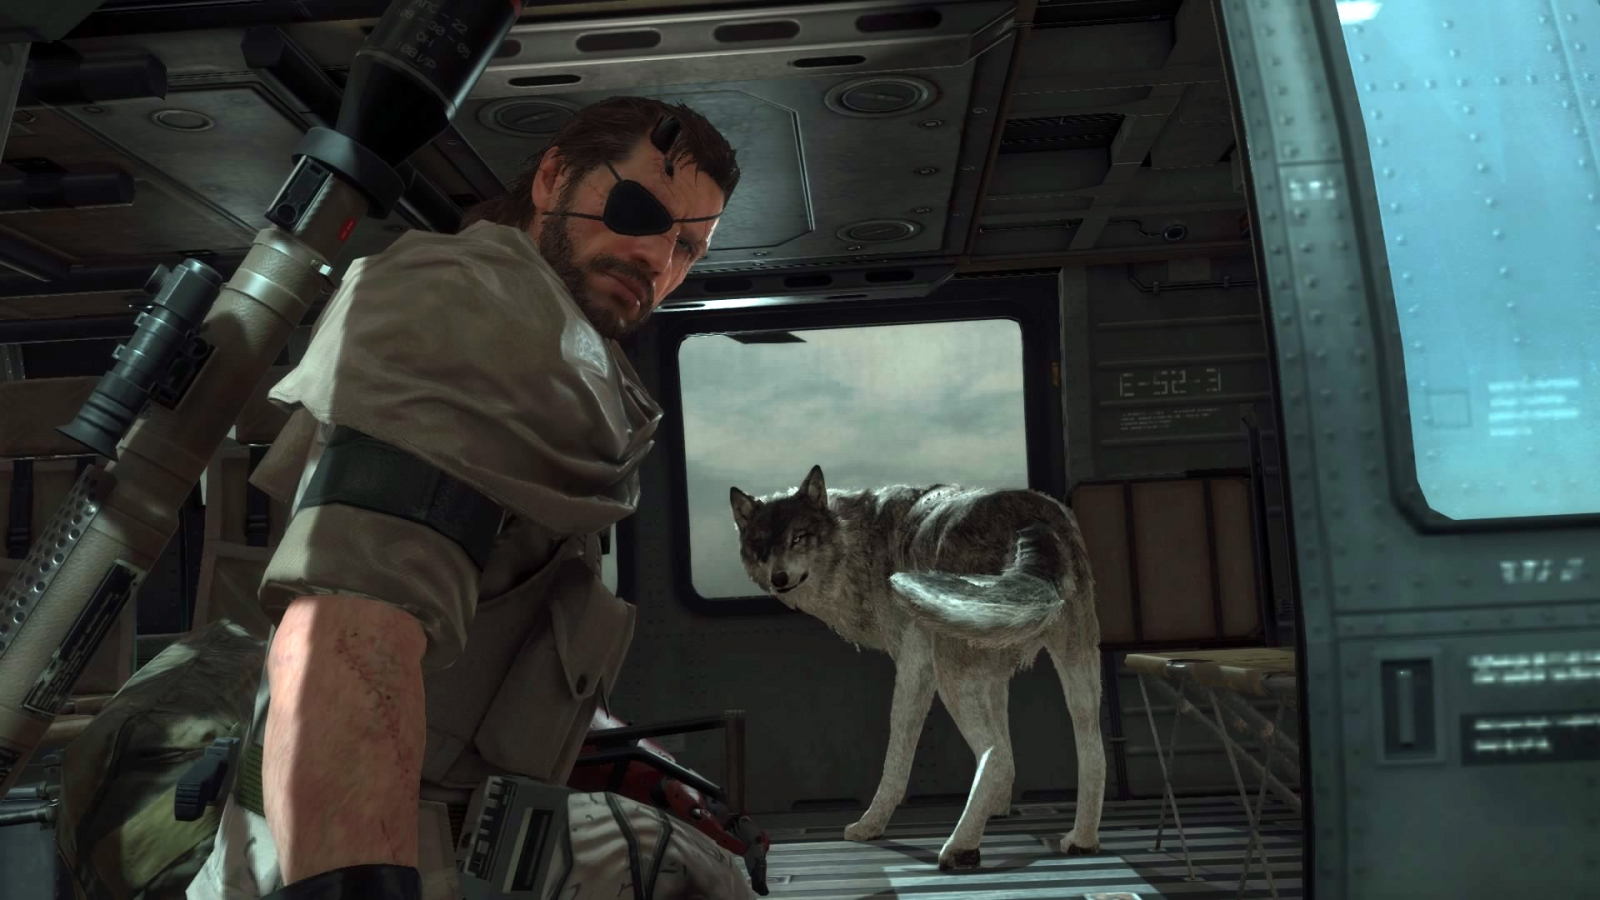 Metal Gear Solid 5 Fans Want Full Release Of The Phantom